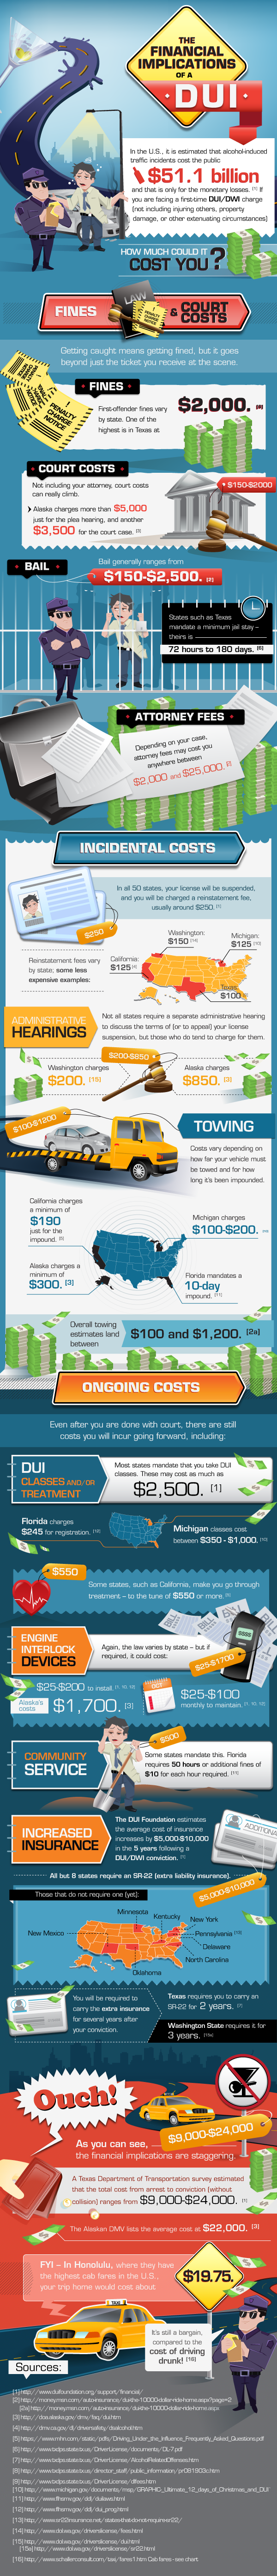 How much does a Tampa DUI conviction cost?